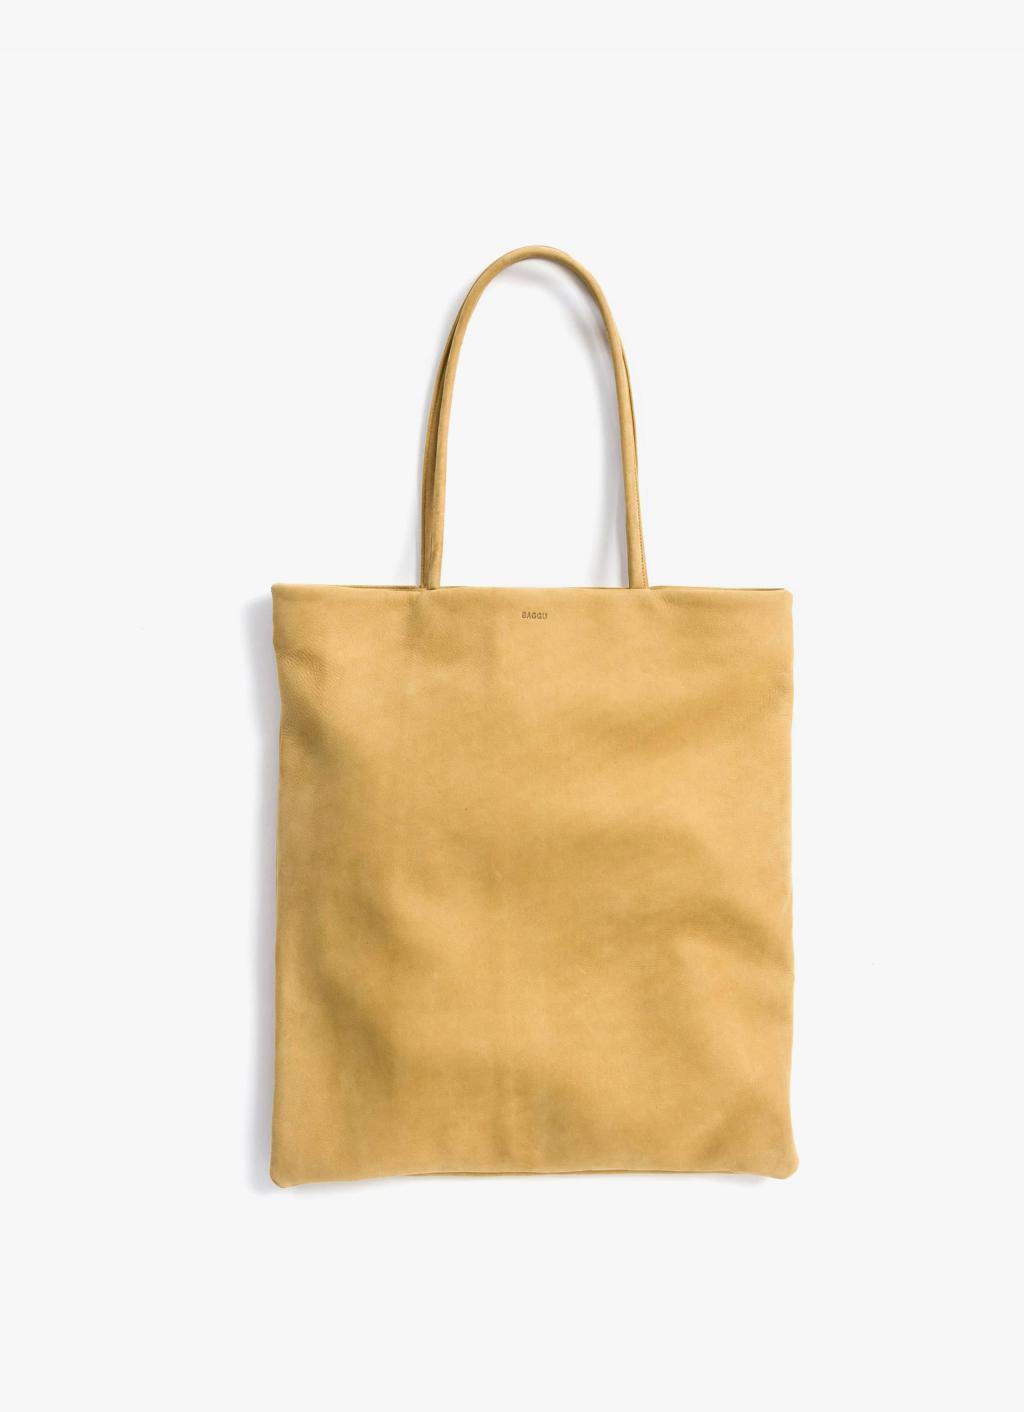 Baggu - Flat Tote - Honey - Nubuck Leather